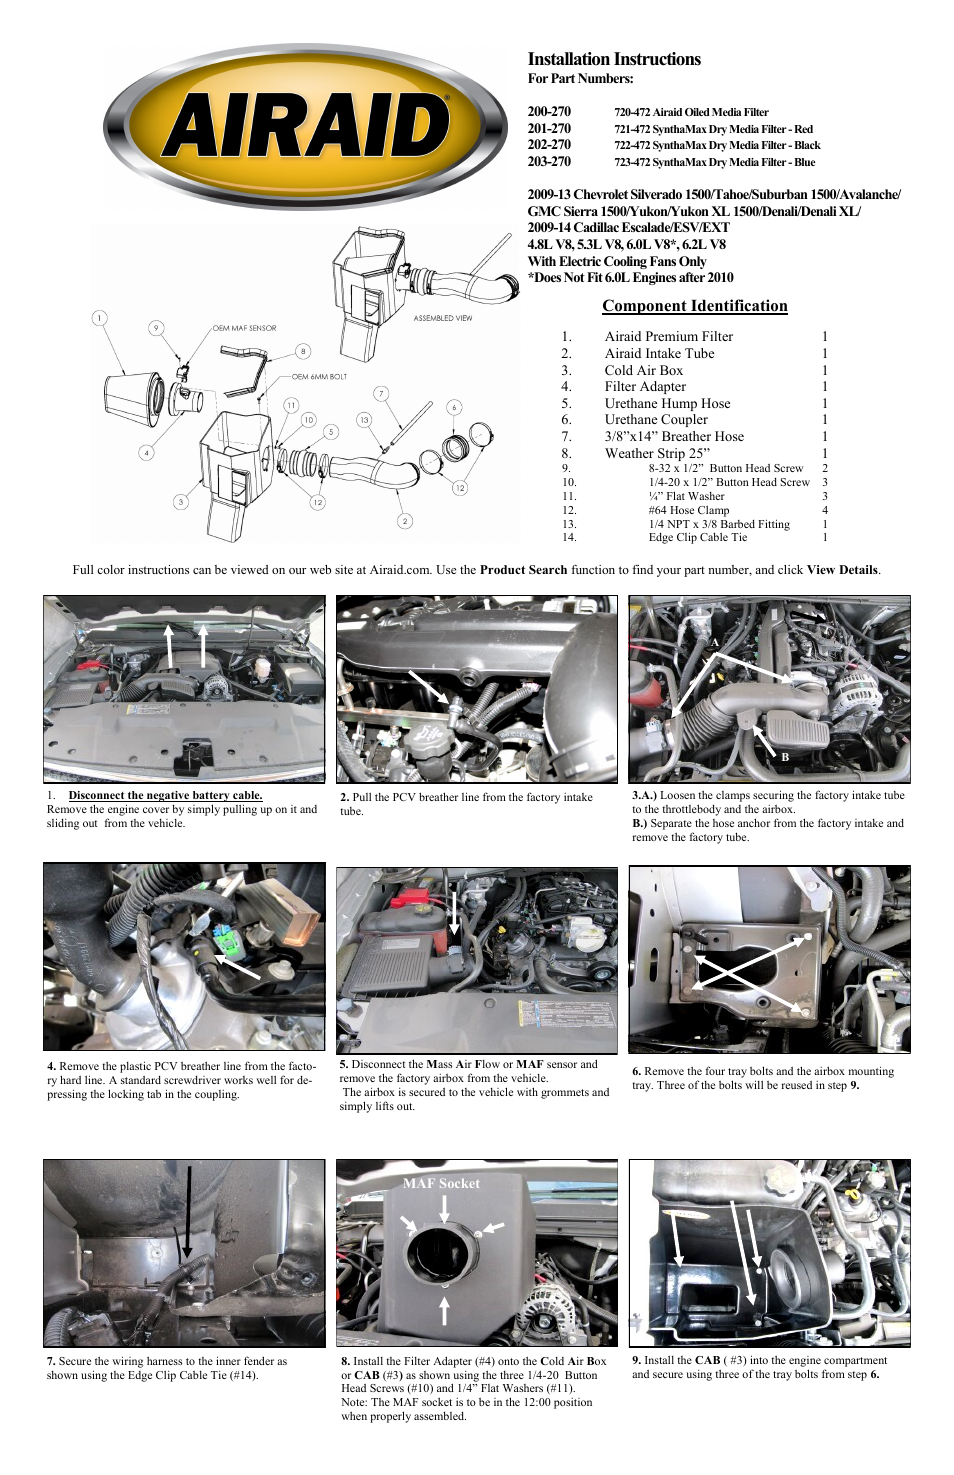 Airaid 200 270 User Manual 2 Pages Also For 201 202 Plastic Wiring Harness Clips Car 203